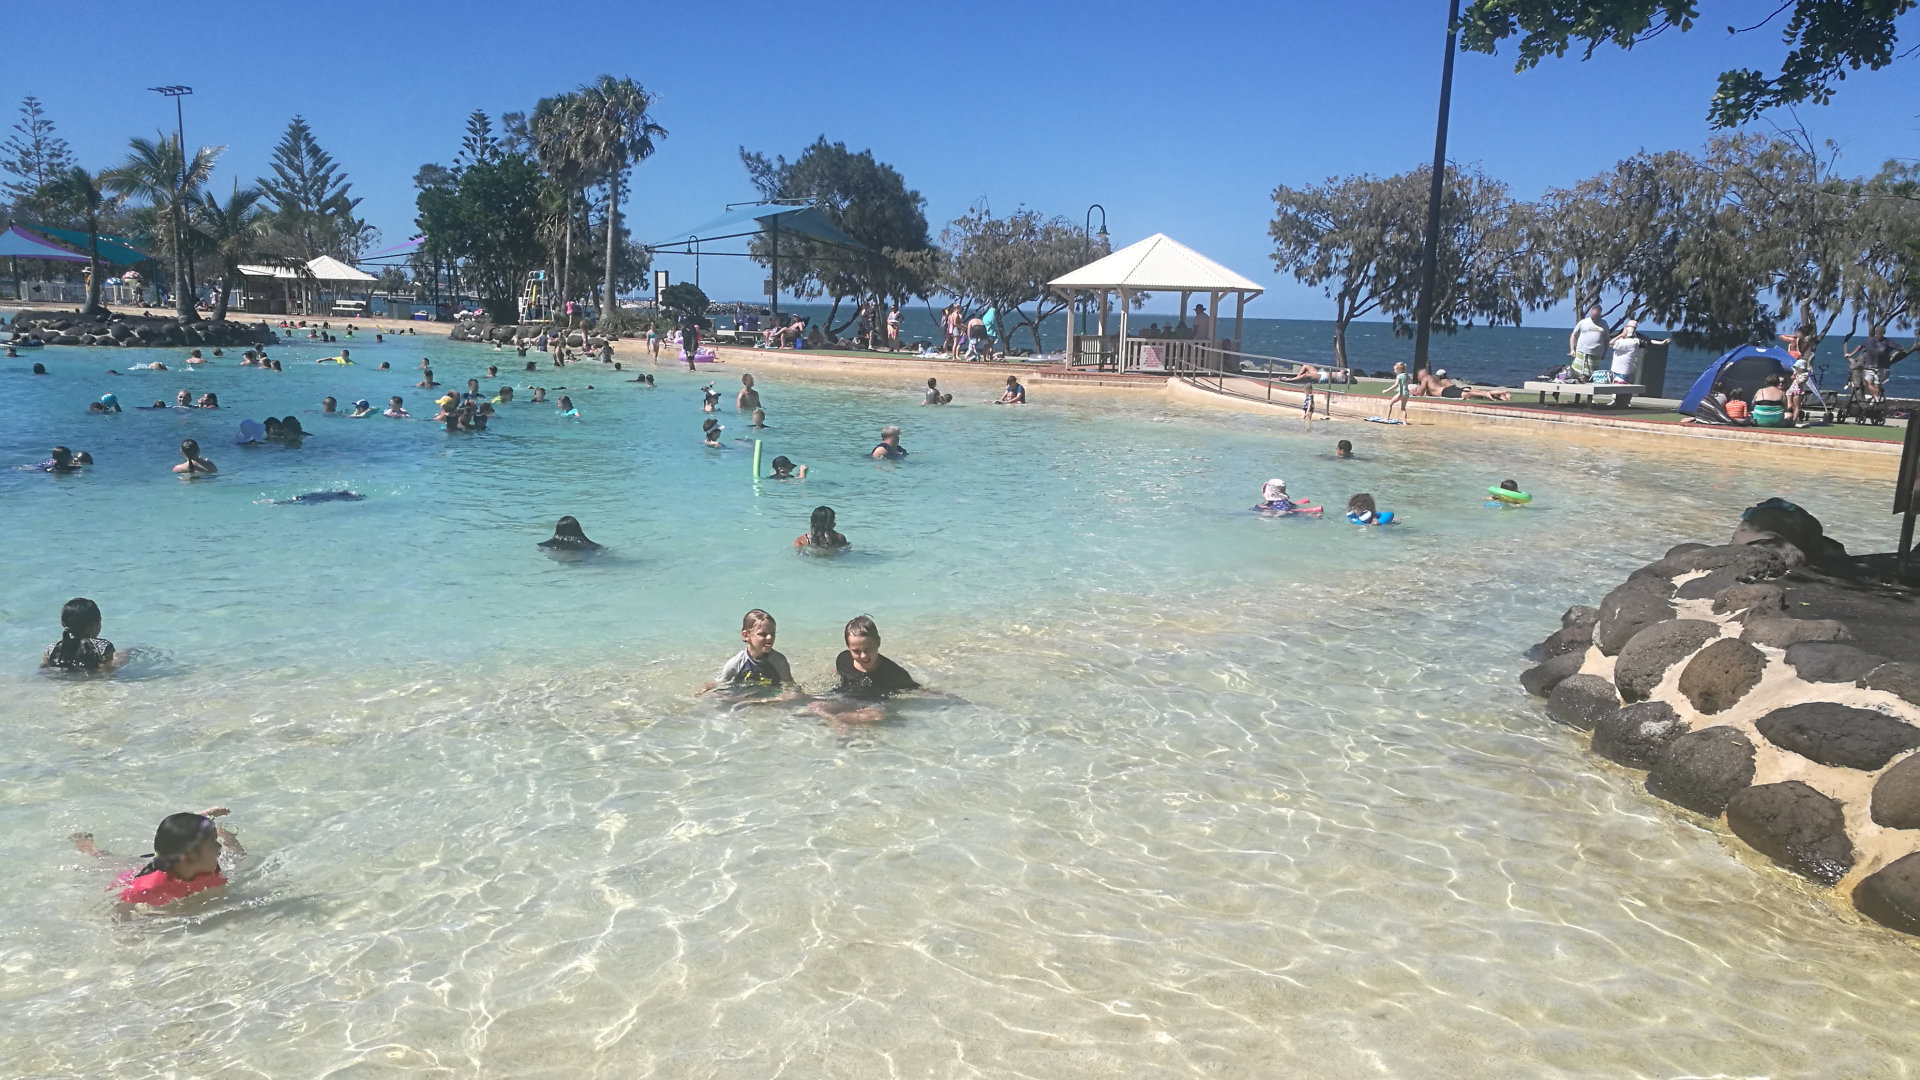 Settlement Cove Lagoon with plenty of people enjoying the cool water, also known as Redcliffe Lagoon, a free water park on Moreton Bay at Redcliffe. Very popular with families, shallow through to deep sections, BBQs and picnic tables